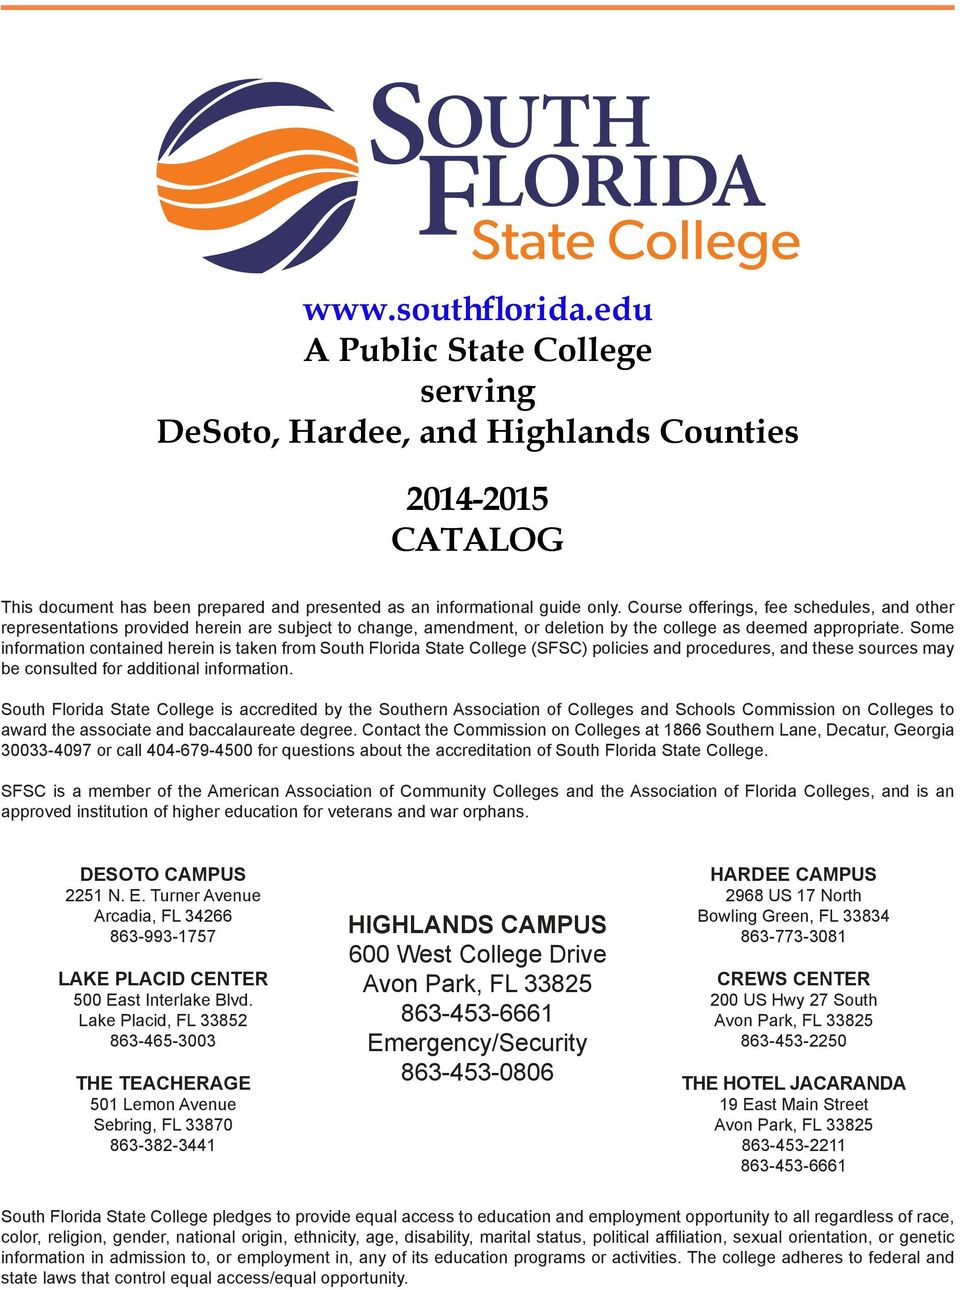 Some information contained herein is taken from South Florida State College (SFSC) policies and procedures, and these sources may be consulted for additional information.